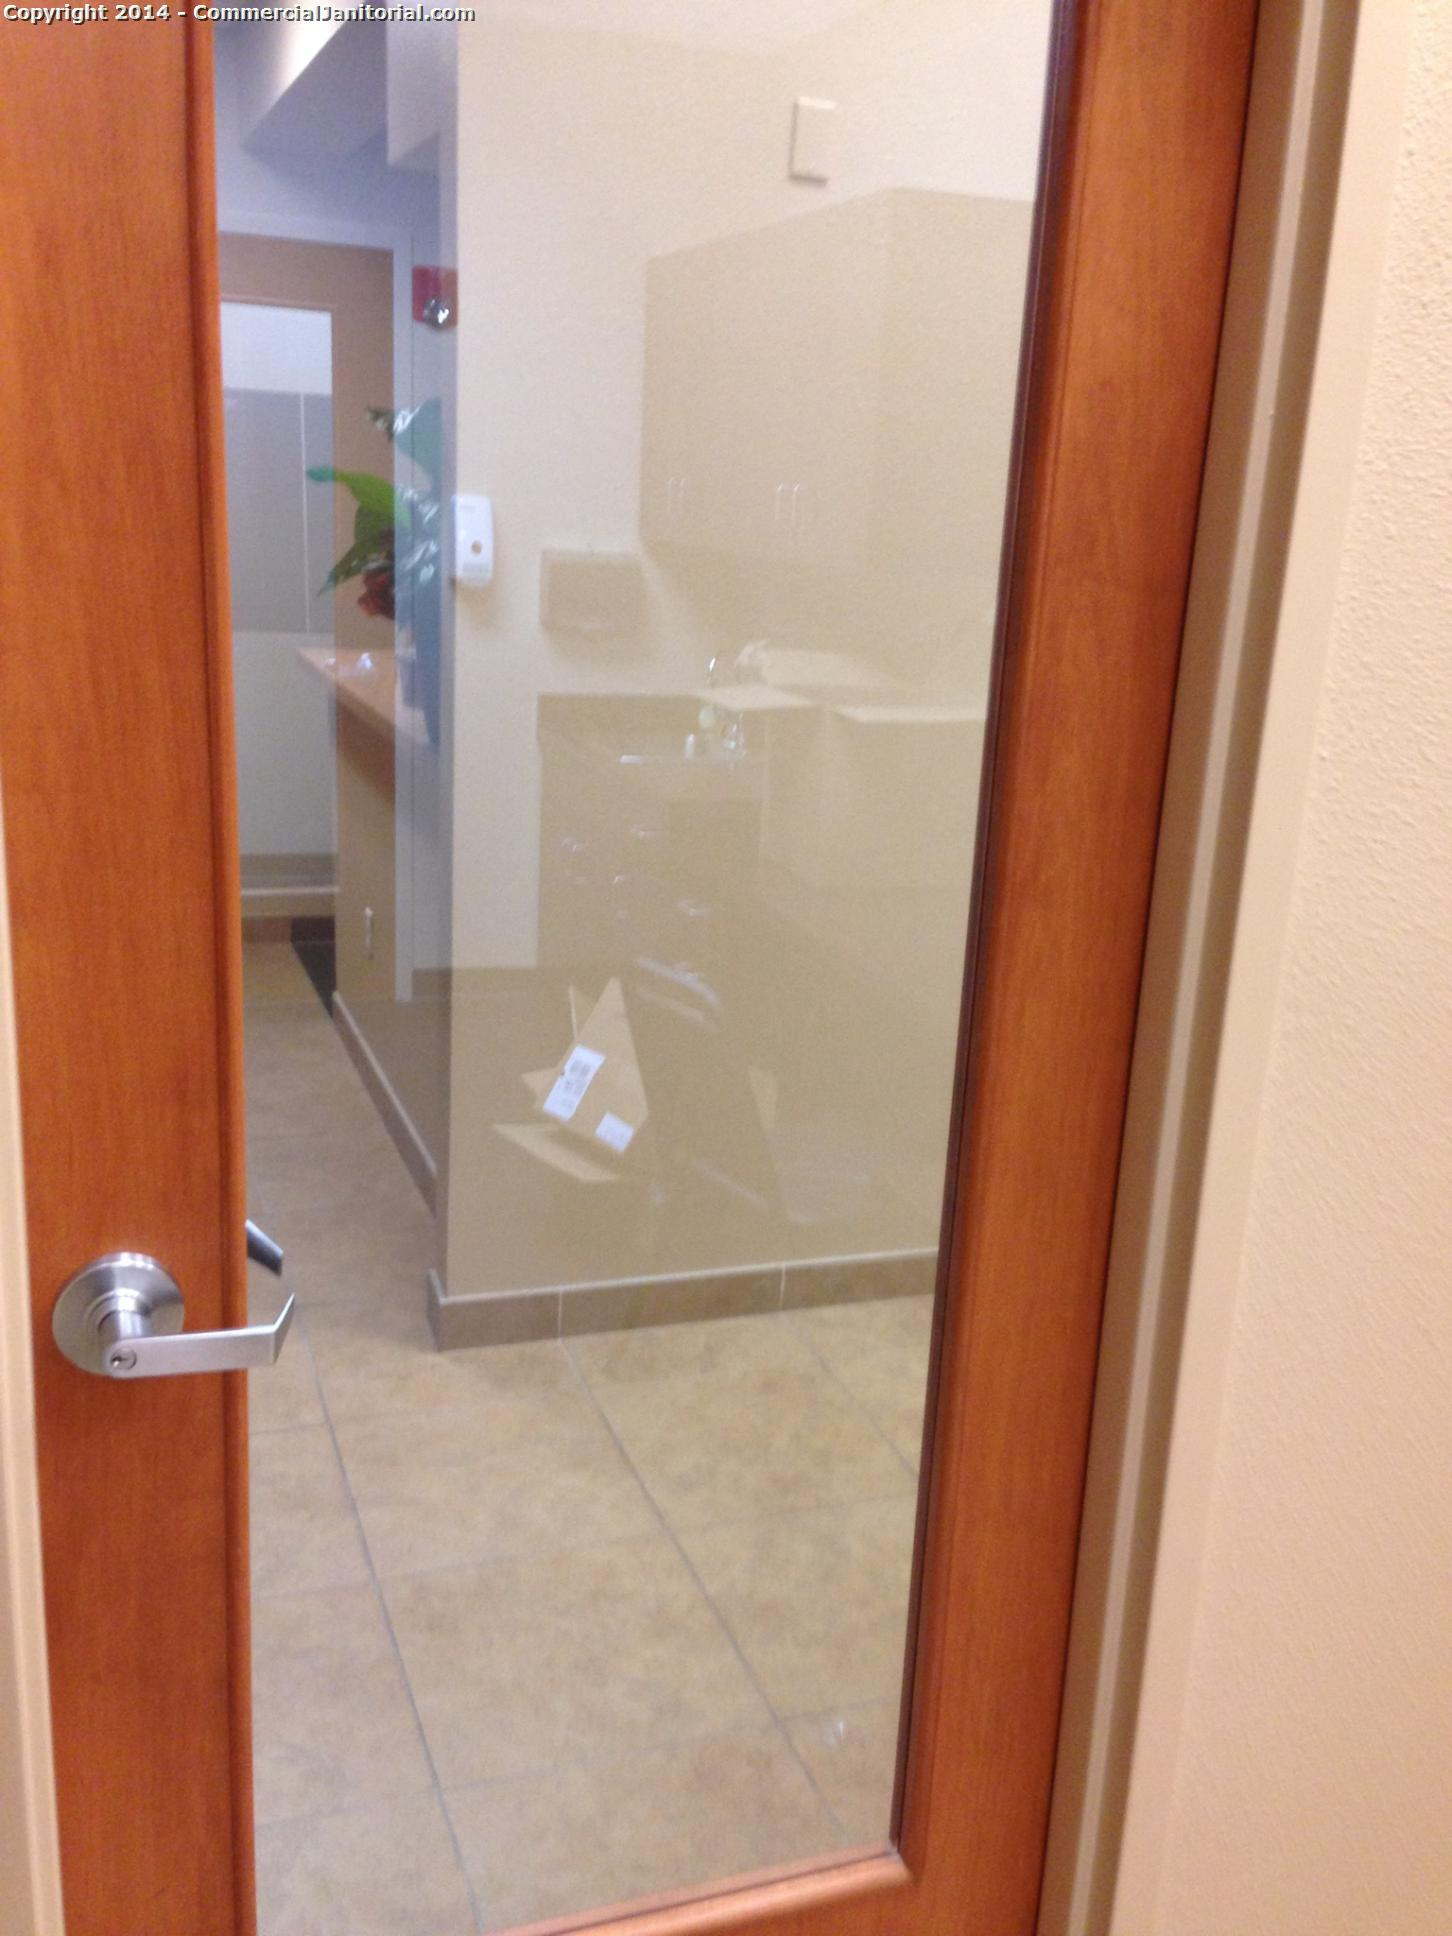 10/22/14  Laura R. performed inspection at account.  The crew did a great job of wiping interior glass and door frames.  Client will be super happy.  Nice work team!  Laura R.